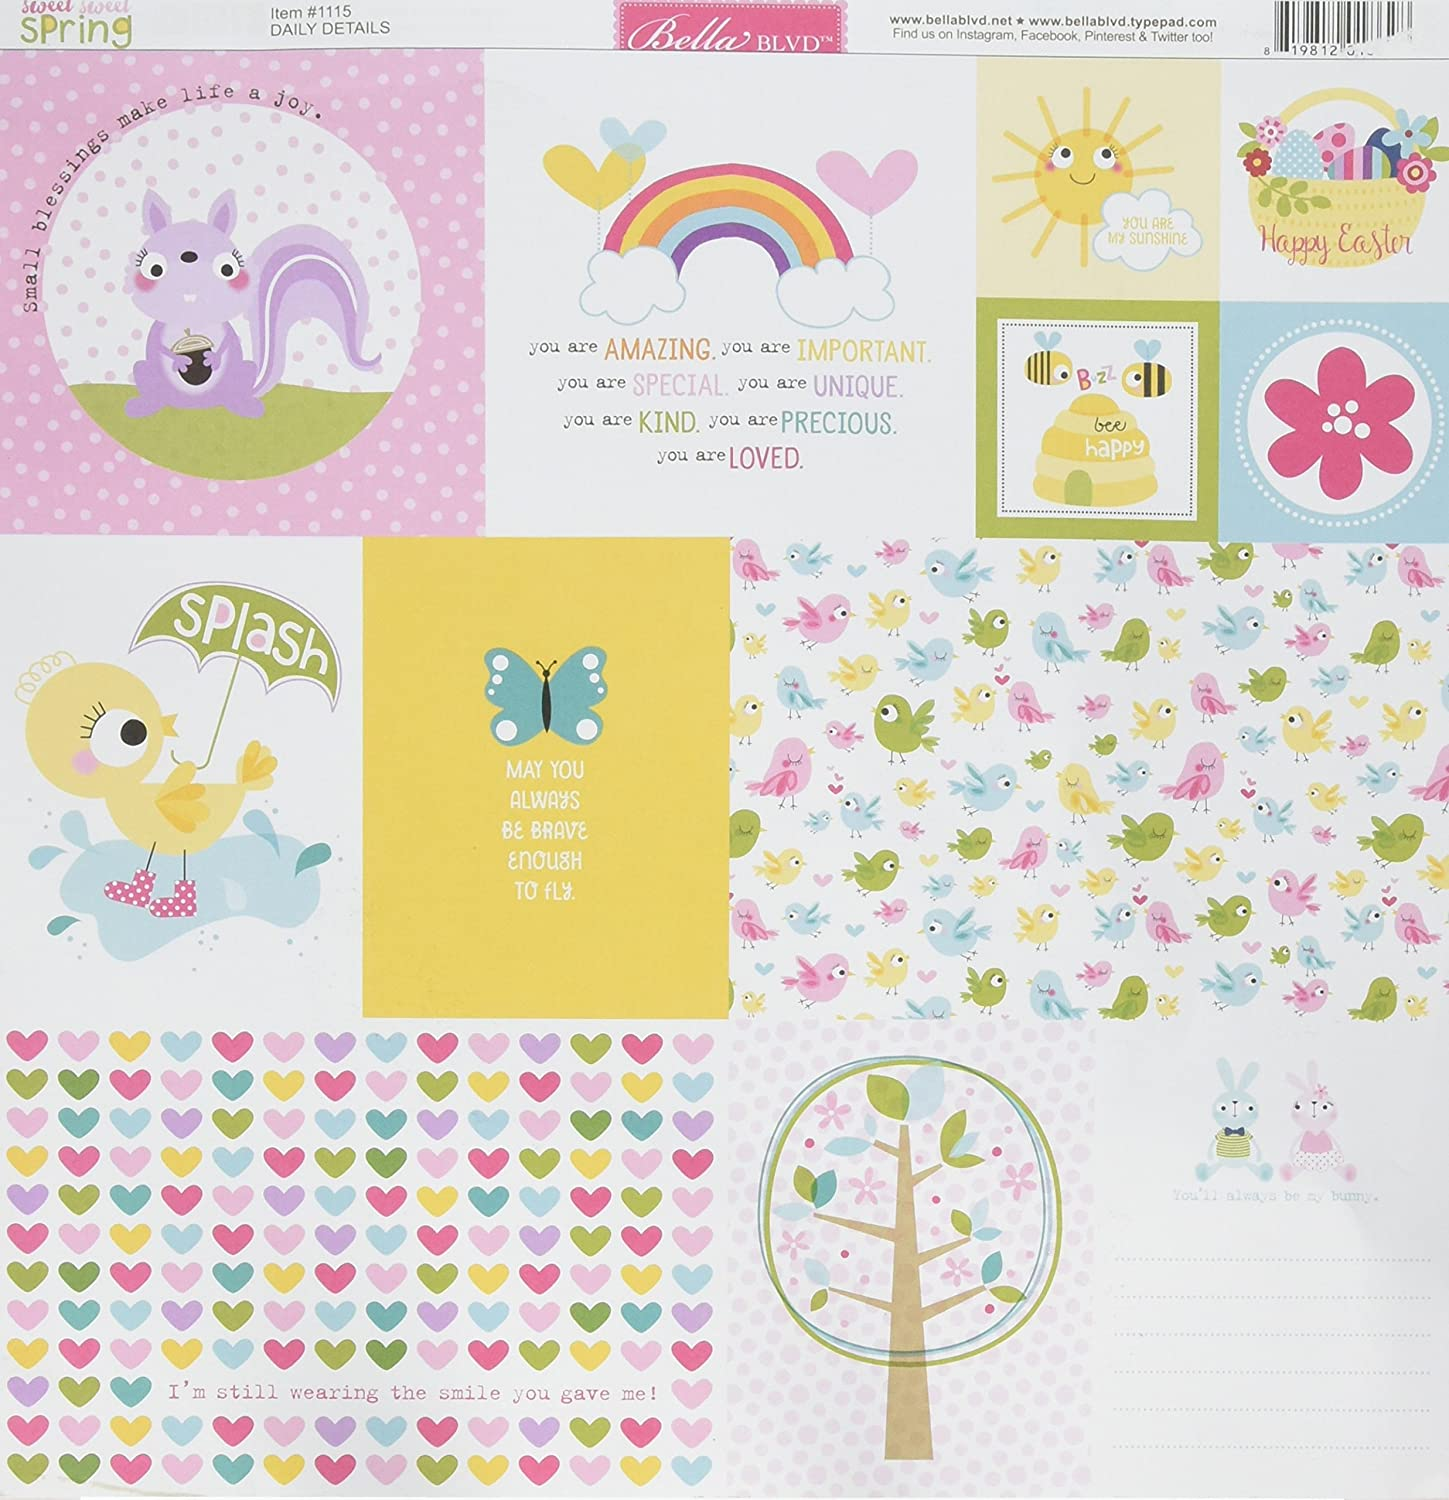 Bella Blvd 1115 Sweet Spring Double-Sided Cardstock (25 Sheet Per Pack), 12